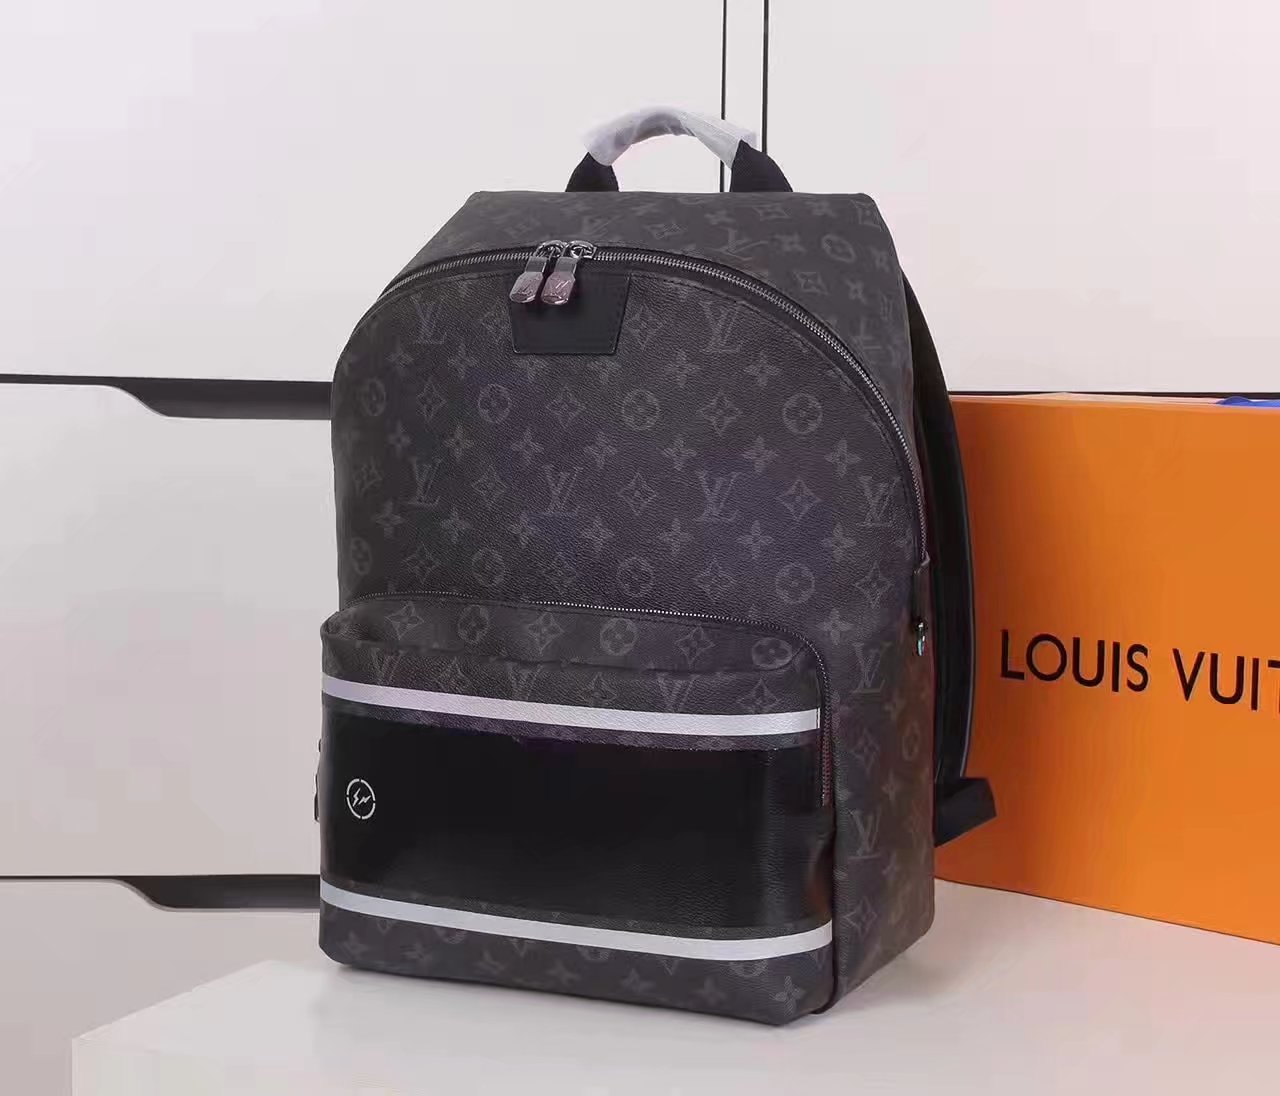 Louis Vuitton M43408 Apolo Backpack Monogram Eclipse Coated Canvas